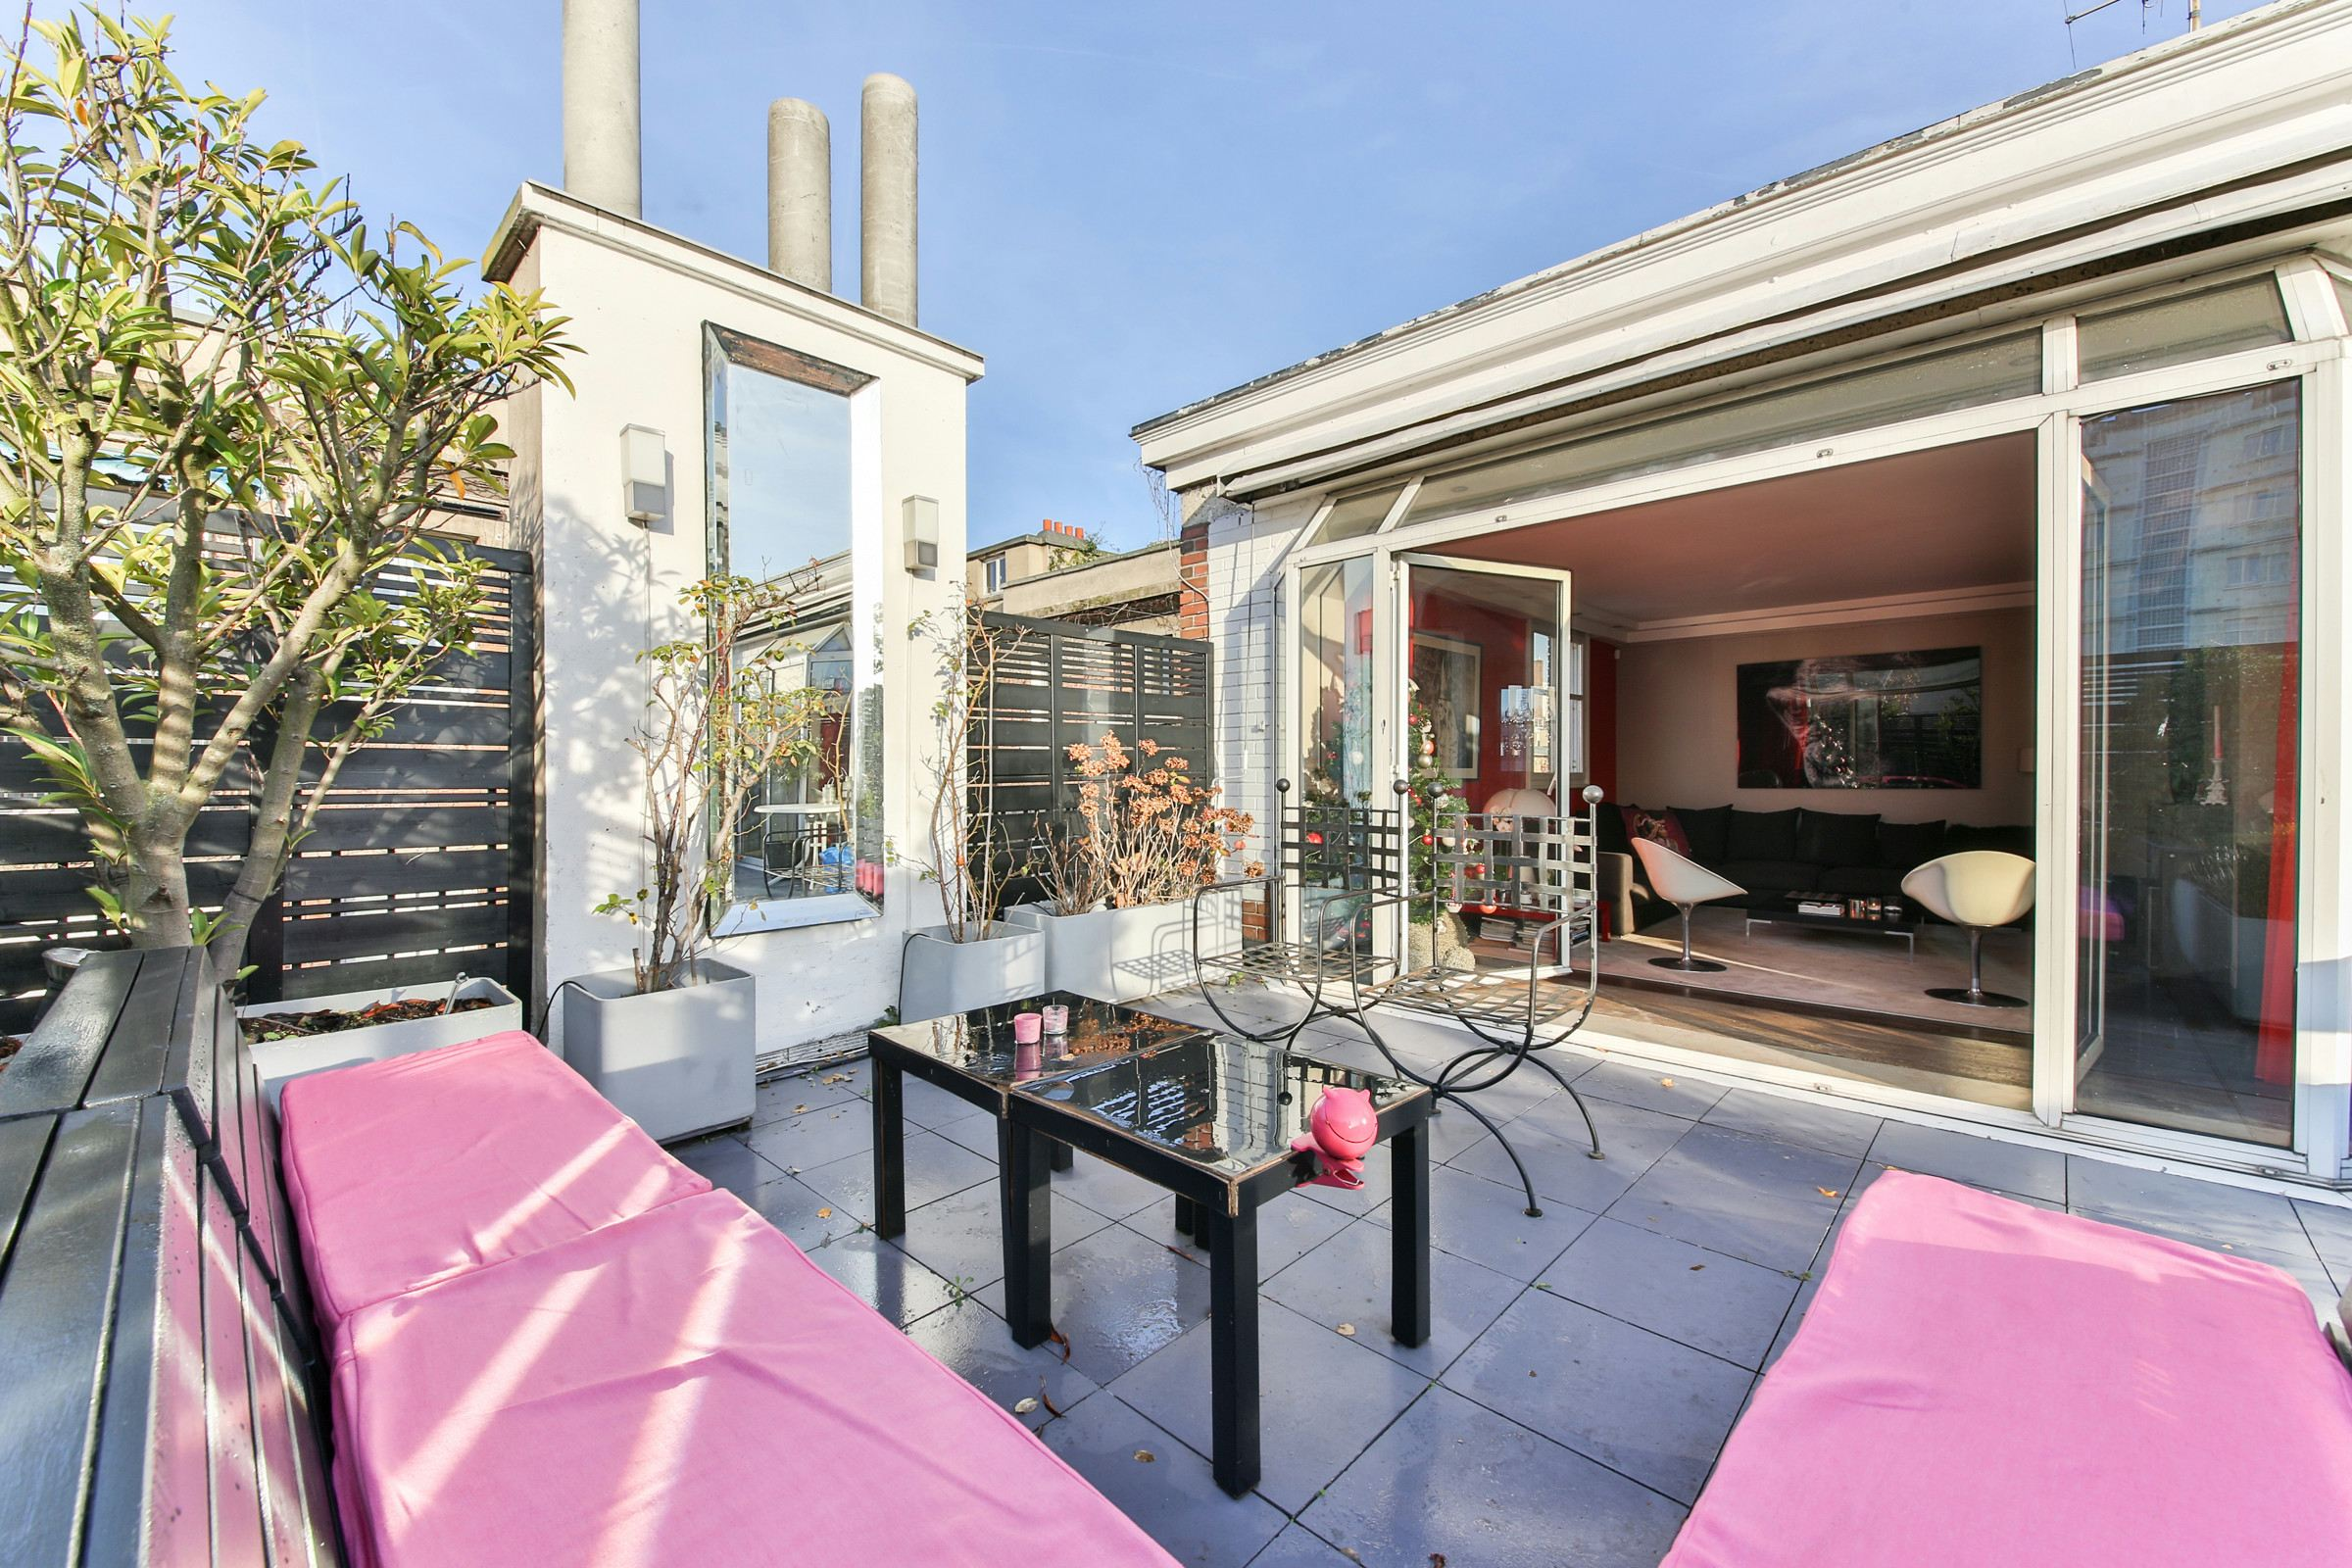 Property For Sale at Neuilly sur Seine - Saint James - A 200 sq.m duplex avec terrasse